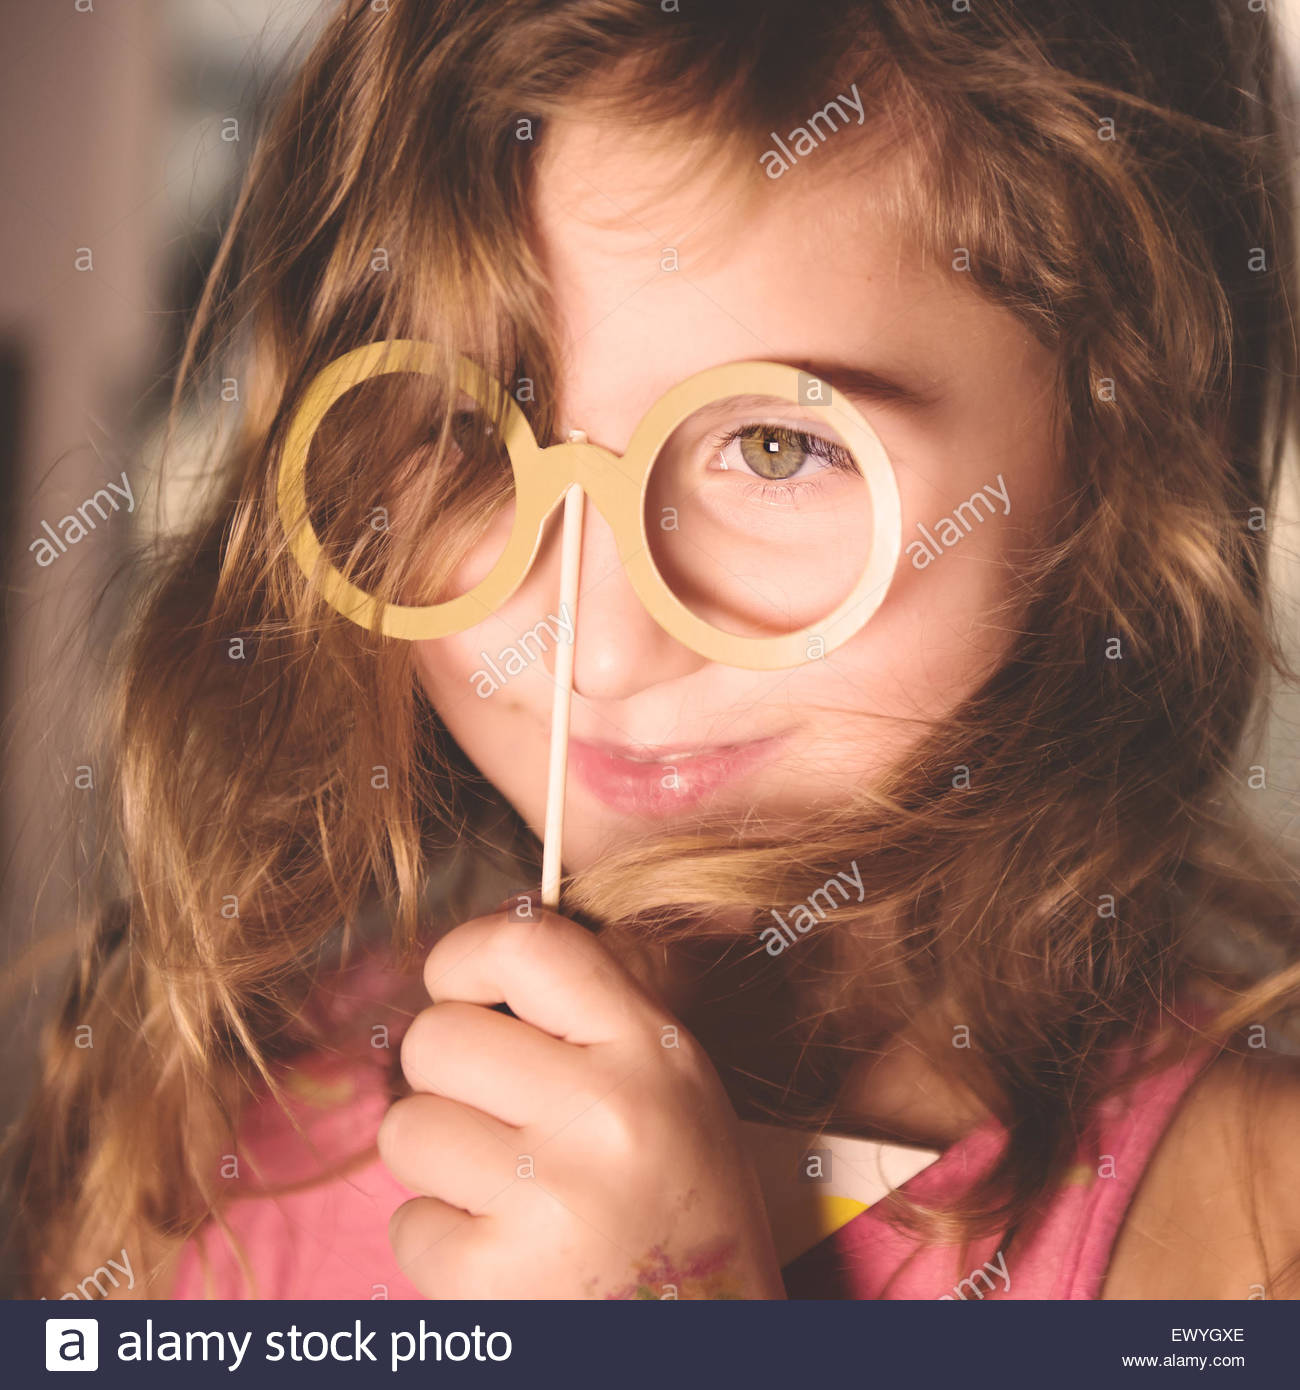 Girl holding party prop glasses on a stick in front of her face - Stock Image